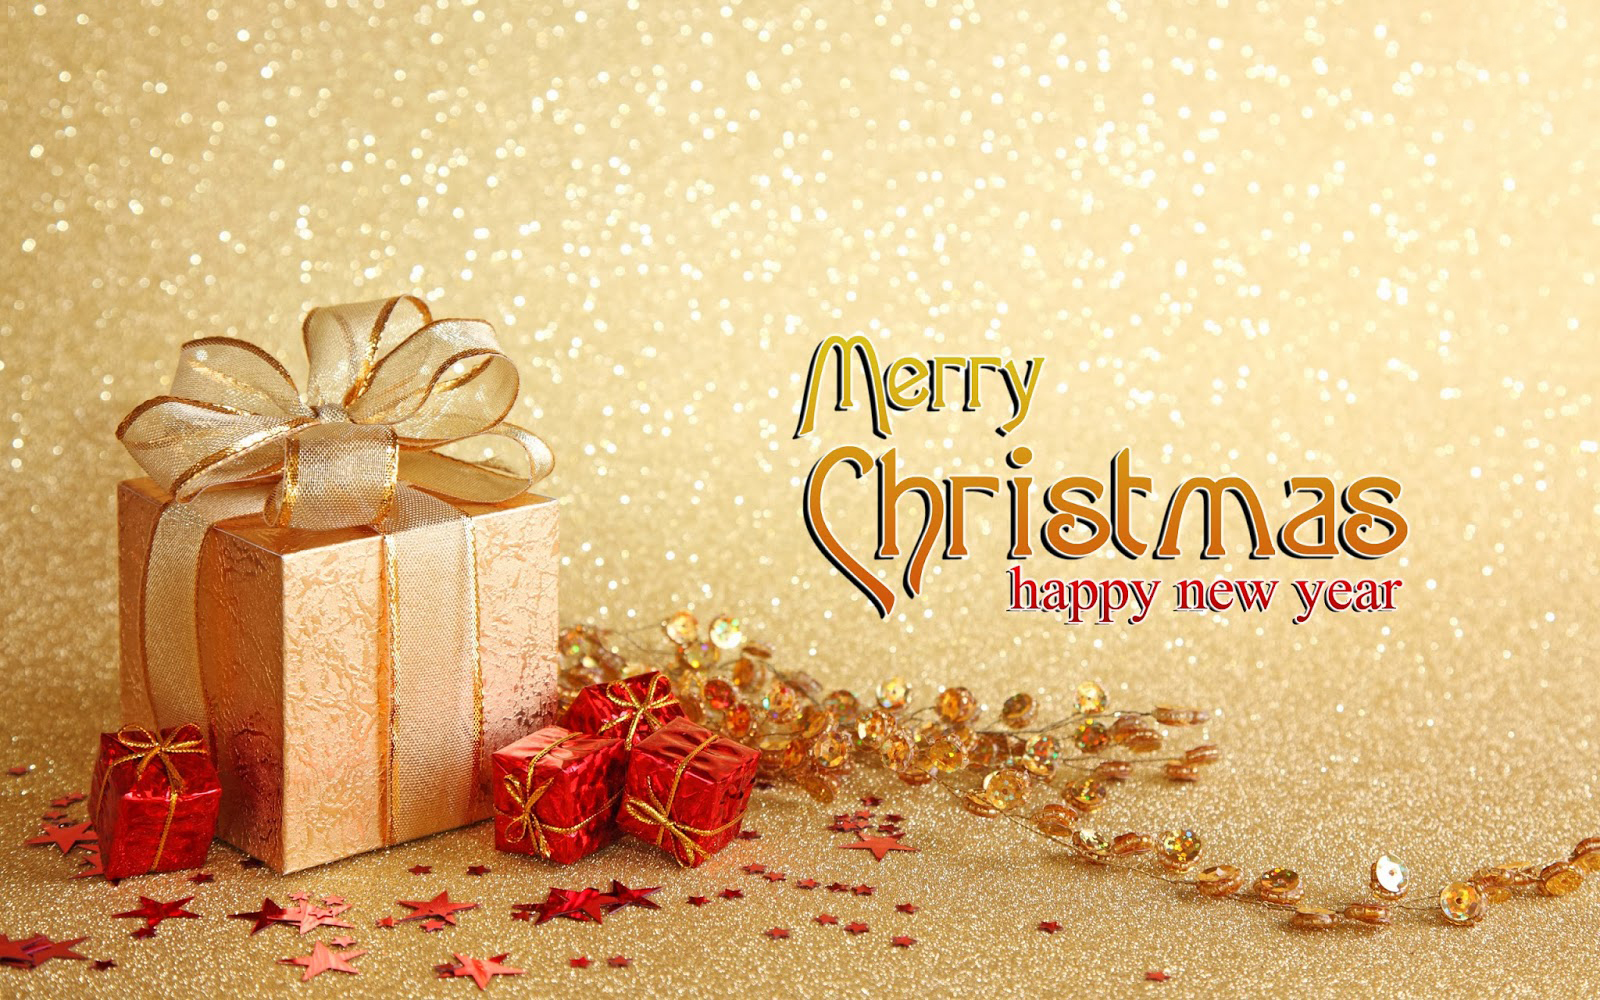 Quotes Xmas Wishes Top 100 Merry Christmas Wishes Quotes & Messages  Christmas Quotes